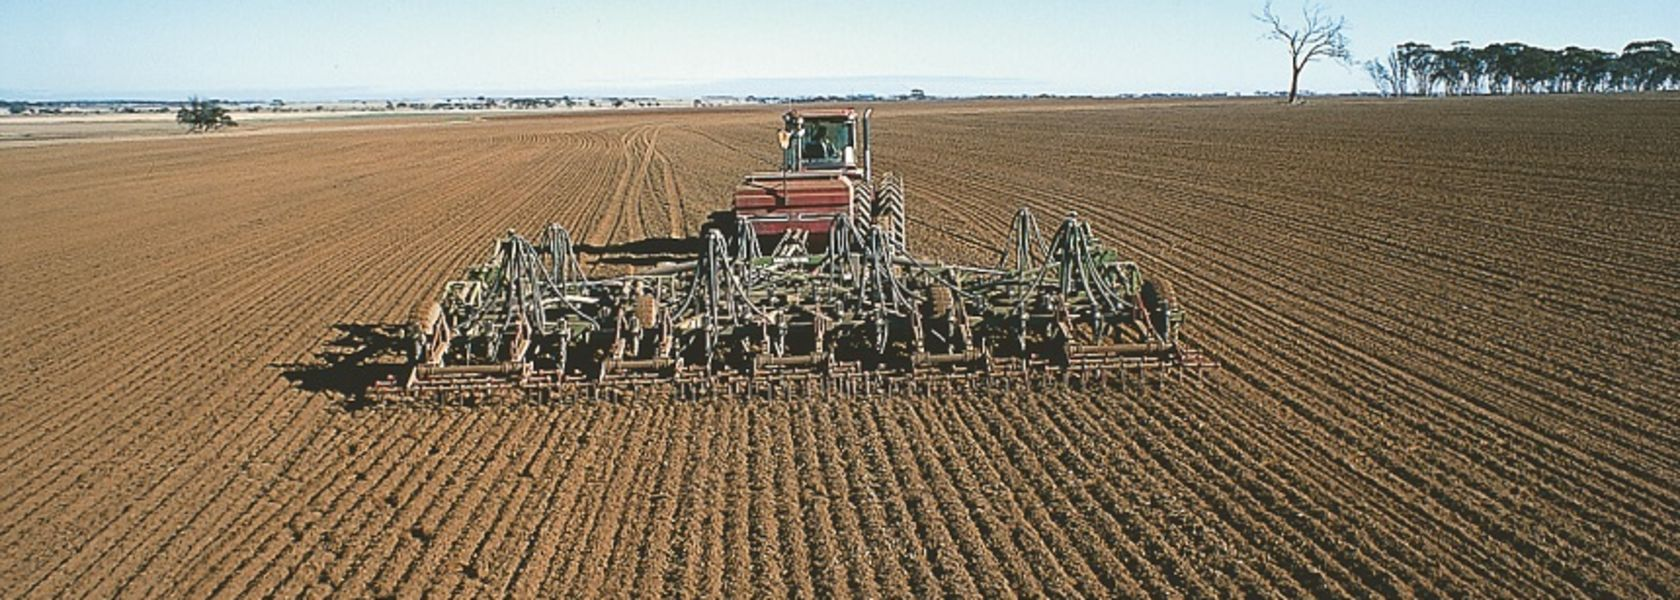 Trials to address fertiliser run off